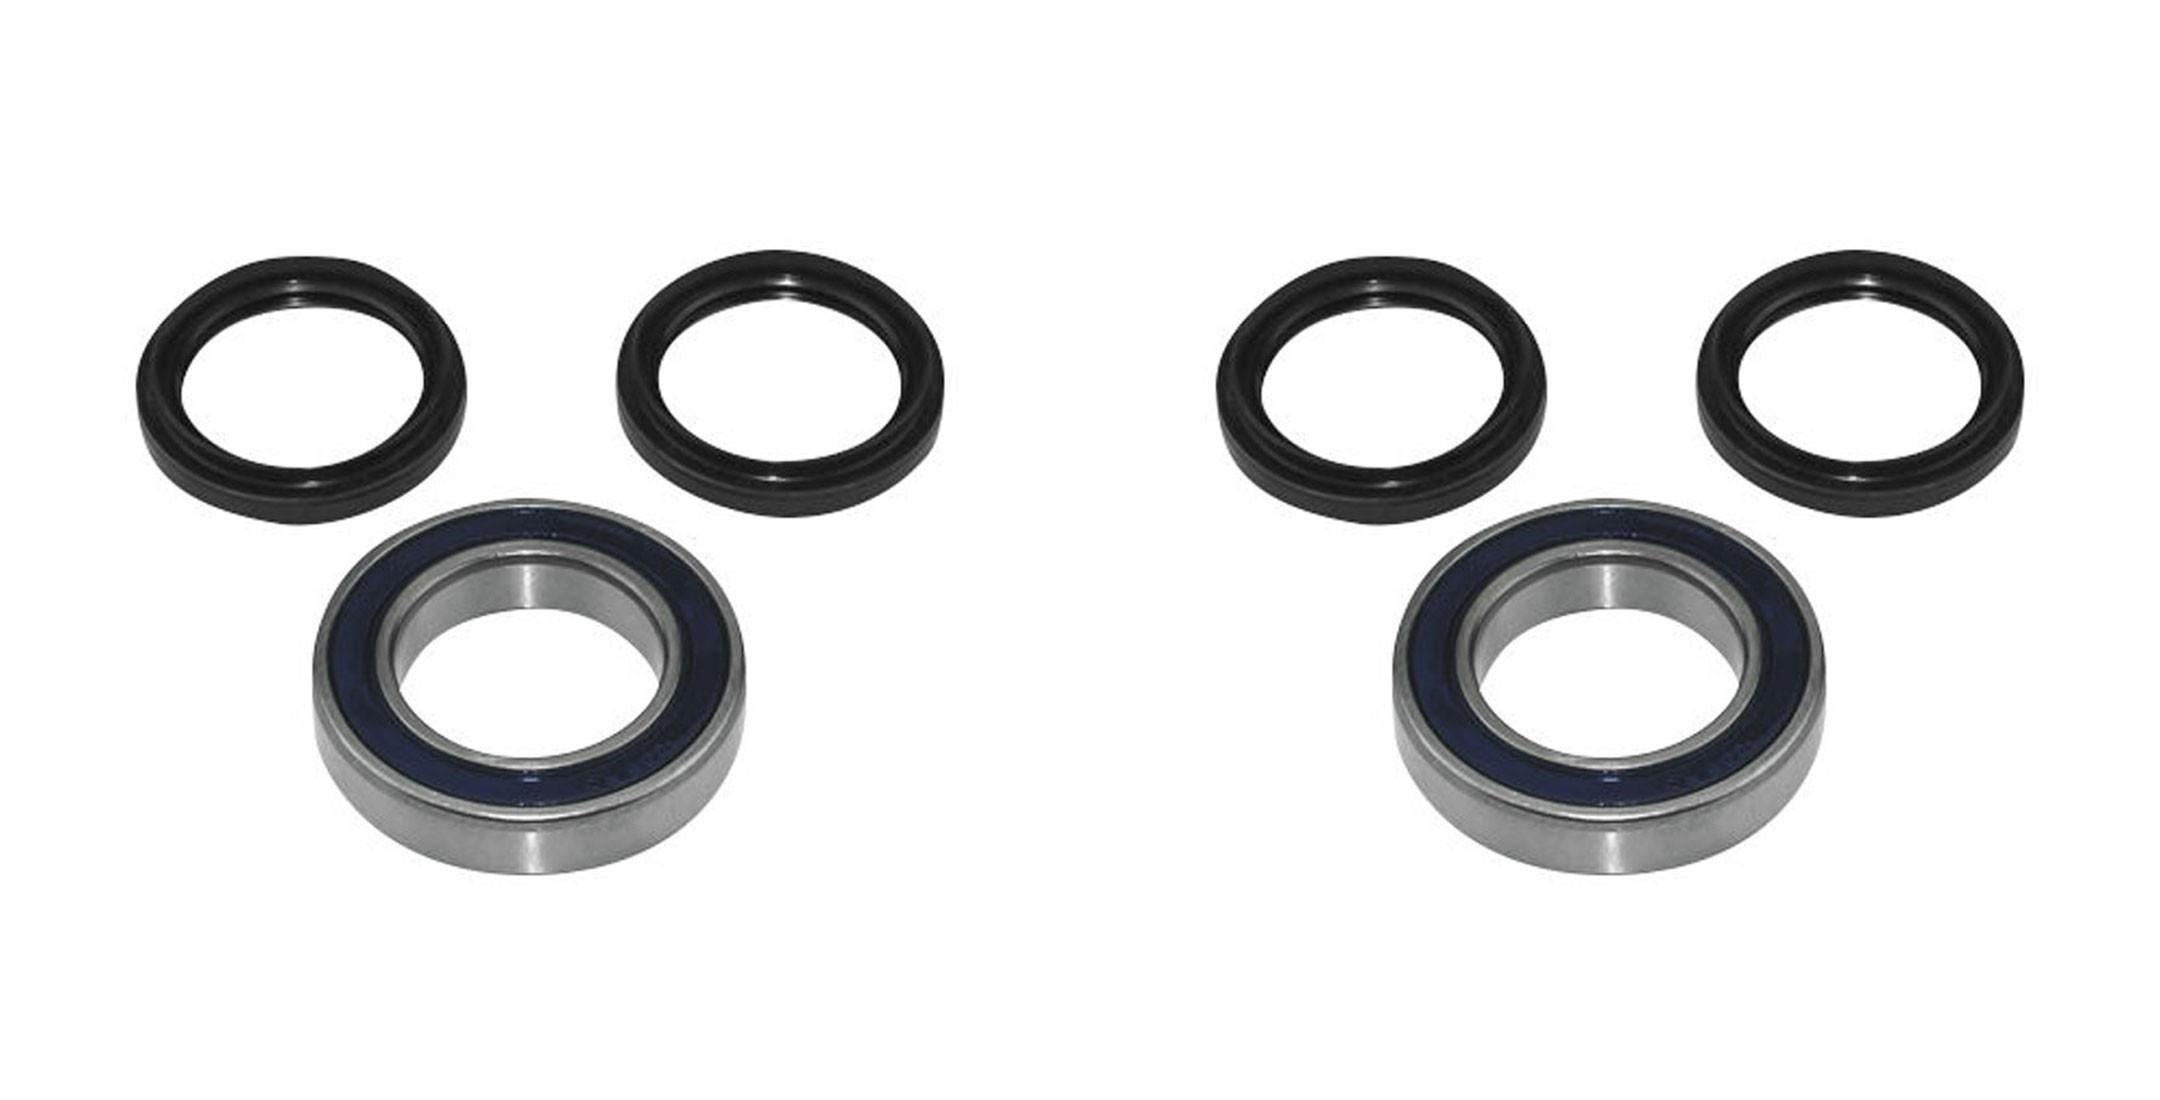 QUADBOSS Rear Wheel Bearing Kits for Suzuki LTA-700 X King